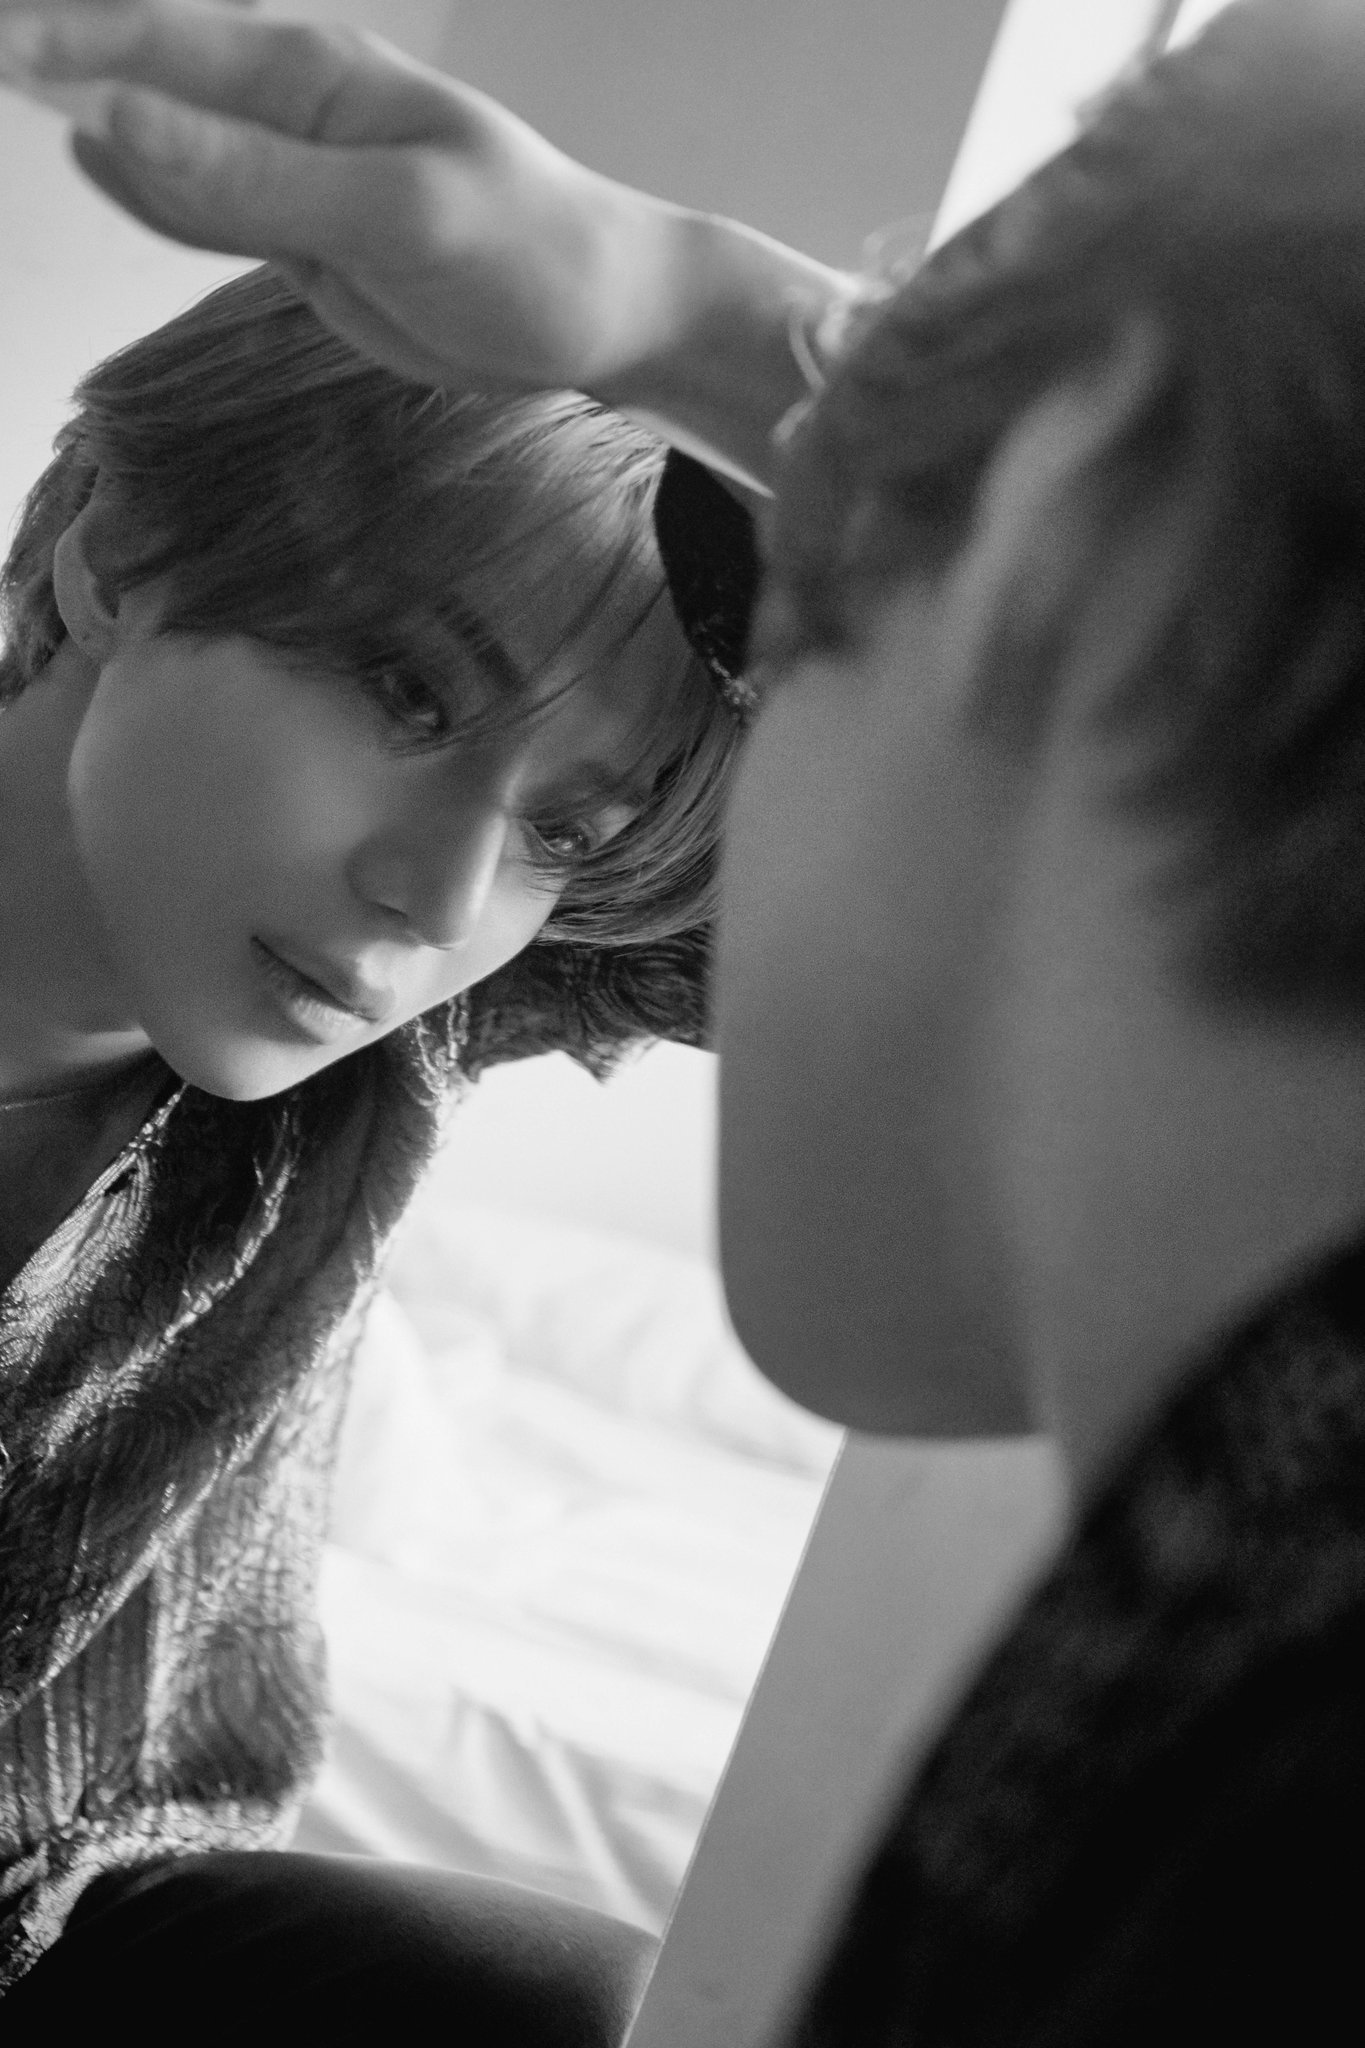 Shinee images TAEMIN for The 2nd Mini Album WANT HD wallpaper and